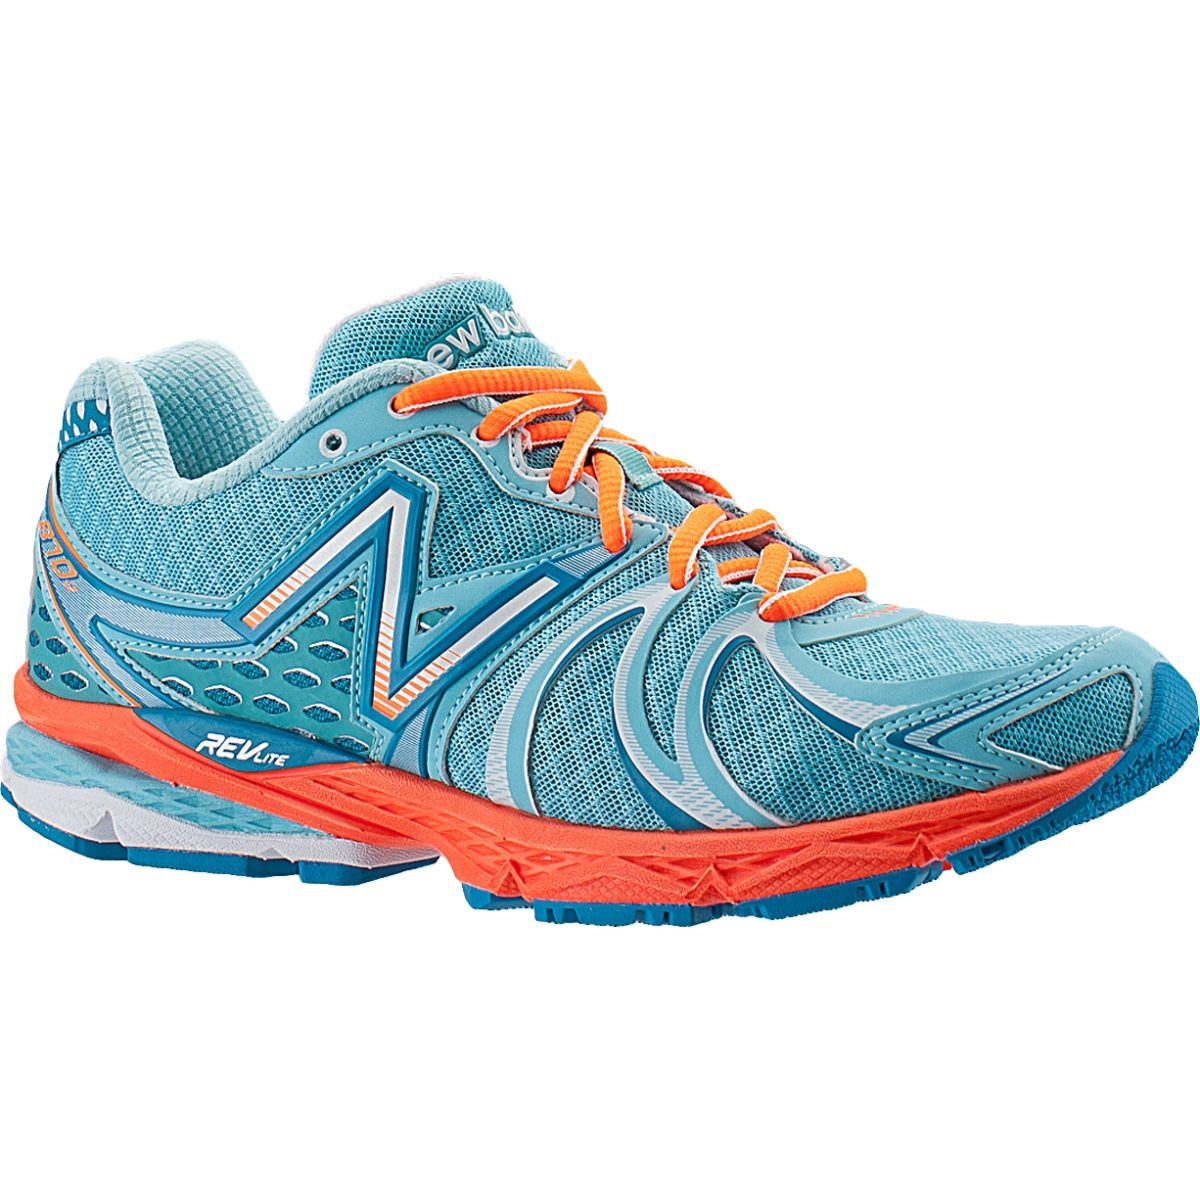 New Balance W870 these are great shoes! Ran a half